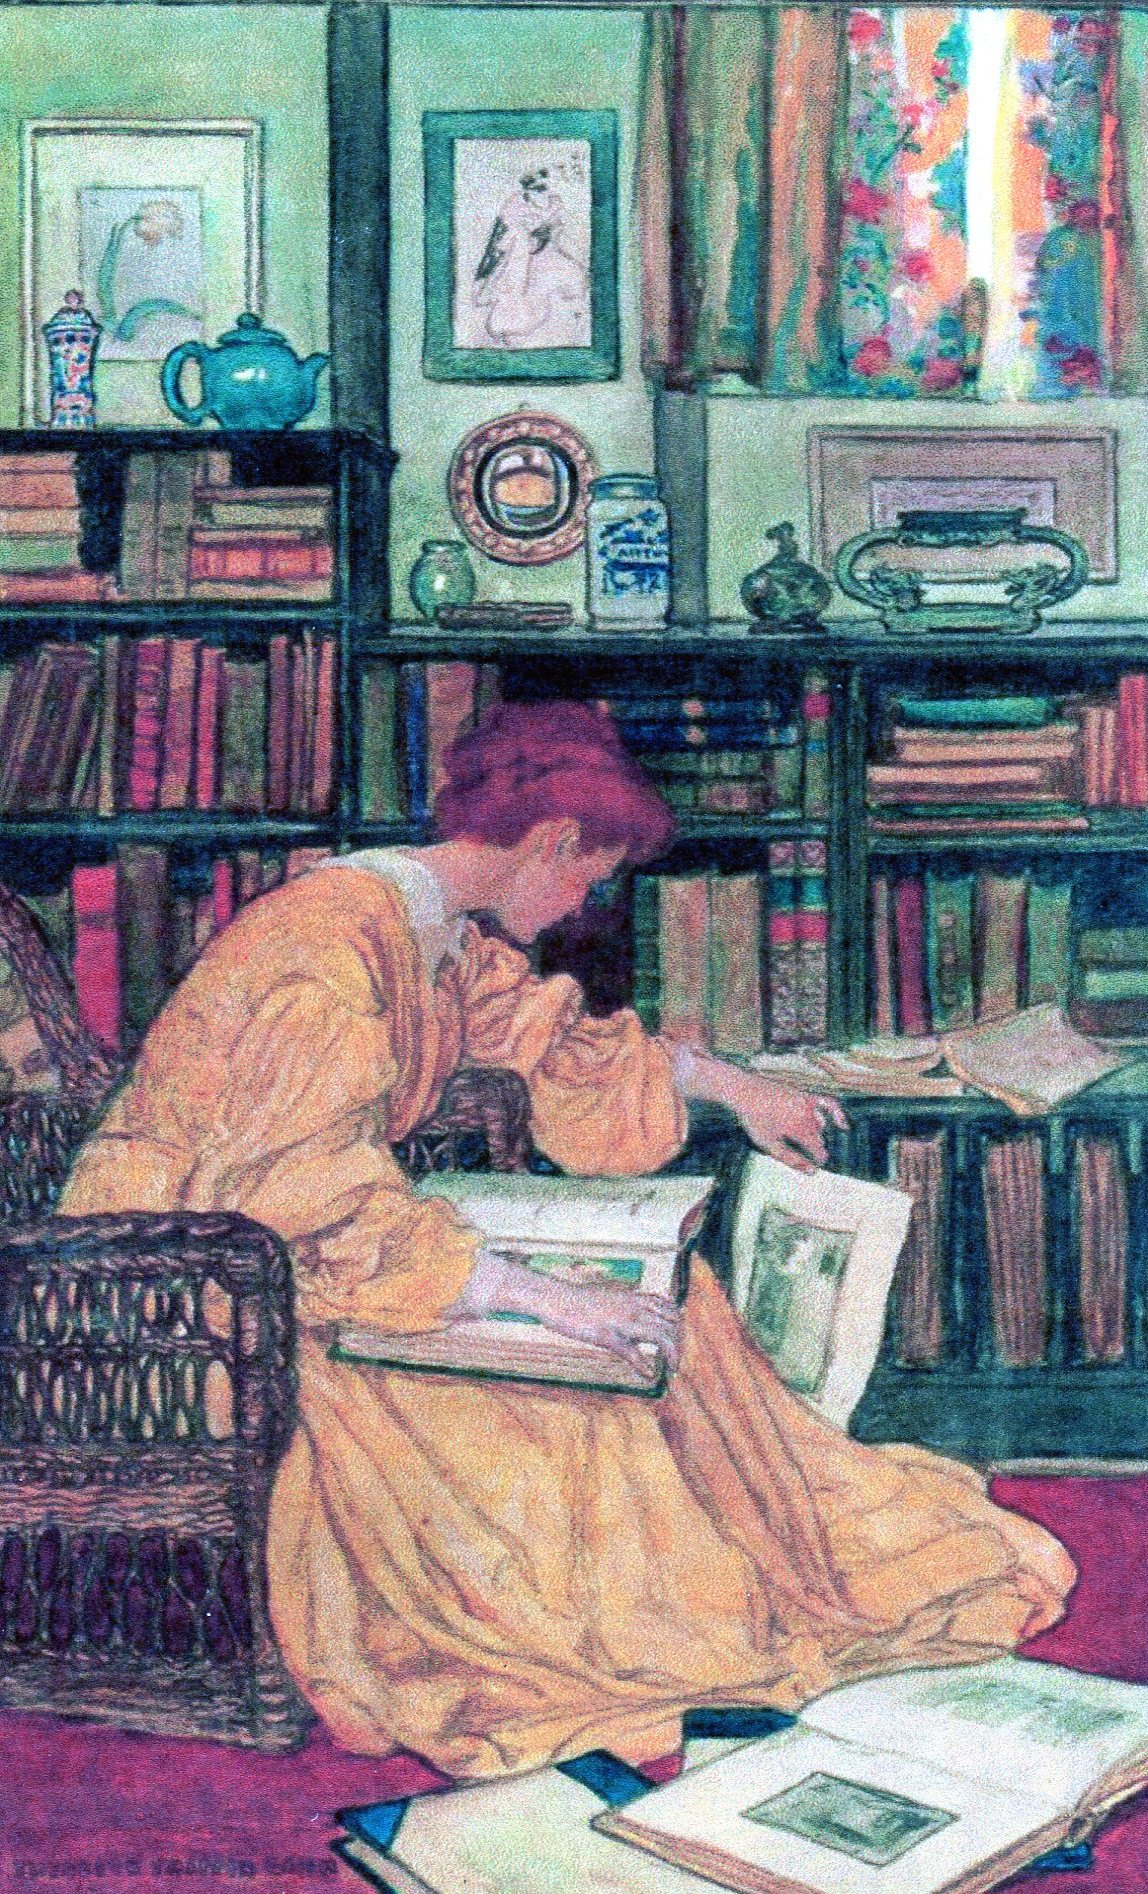 Reading woman, The Library (without caption) - Elizabeth Green.jpg